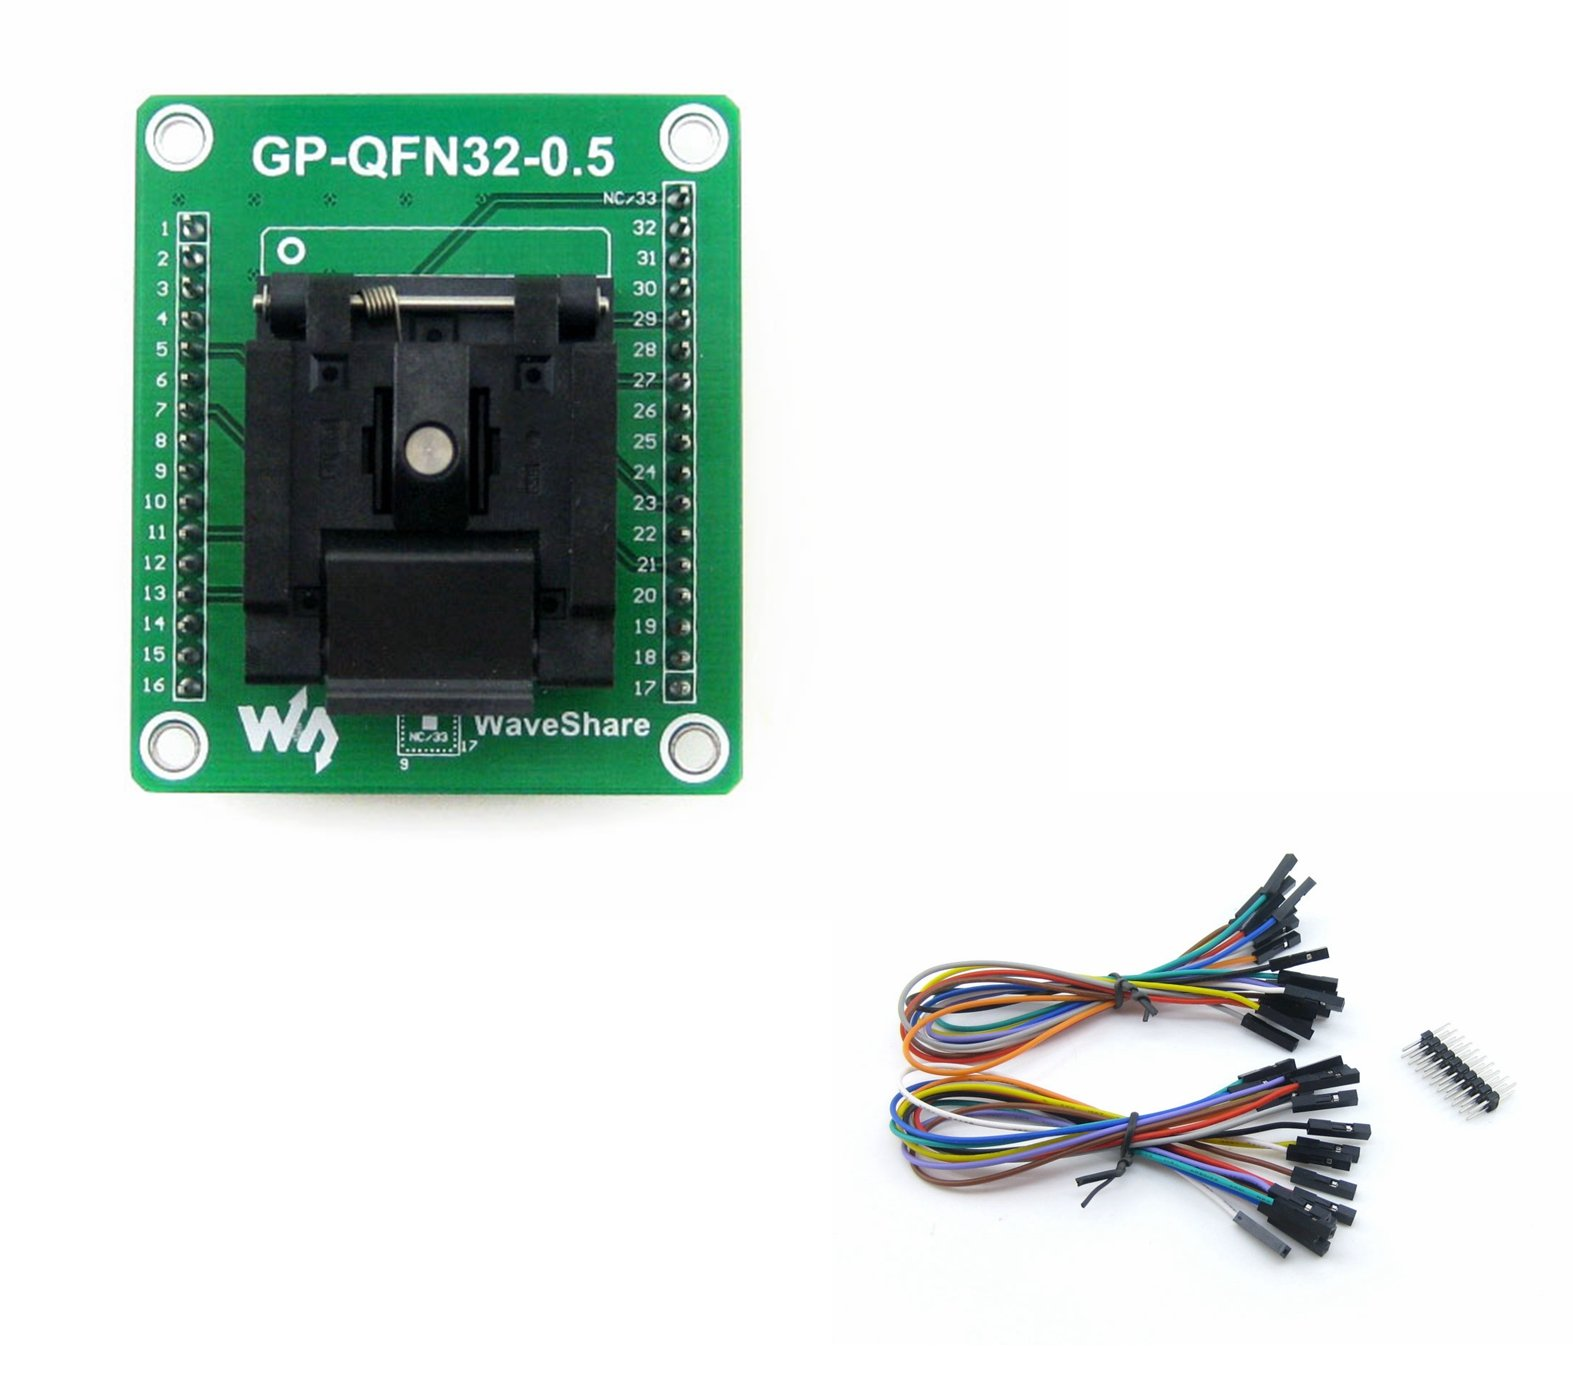 Programmer Adapter Pitch 0.5mm GP-QFN32-0.5-A @CQRobot, Enplas IC Test Socket and Programming Adapter for QFN32 MLF32 Package.